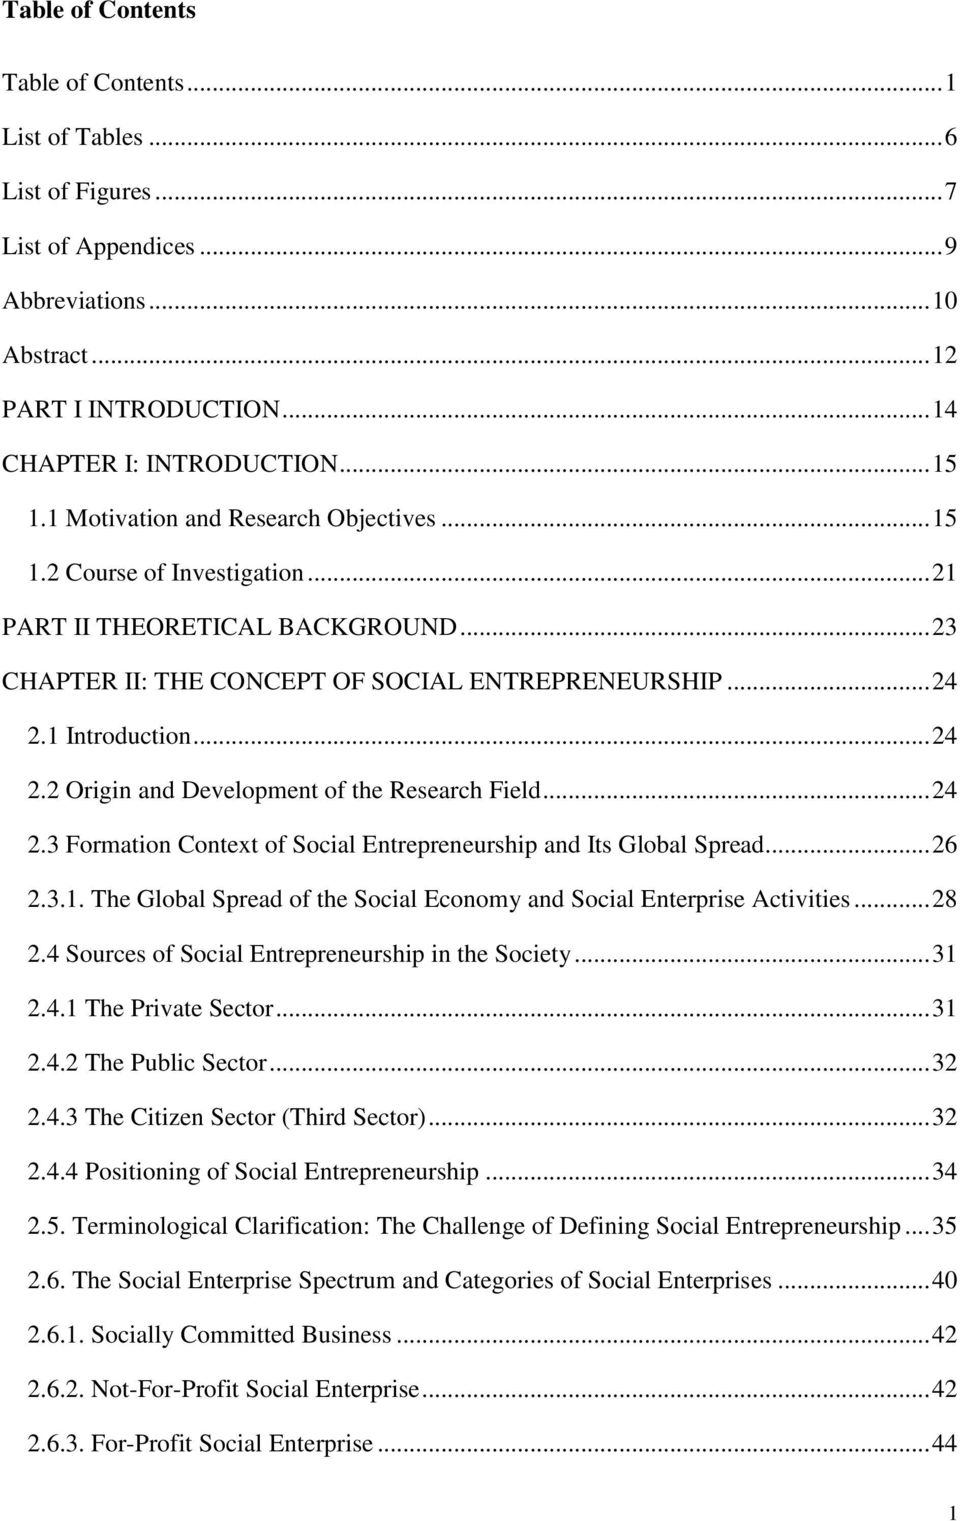 1 Introduction... 24 2.2 Origin and Development of the Research Field... 24 2.3 Formation Context of Social Entrepreneurship and Its Global Spread... 26 2.3.1. The Global Spread of the Social Economy and Social Enterprise Activities.